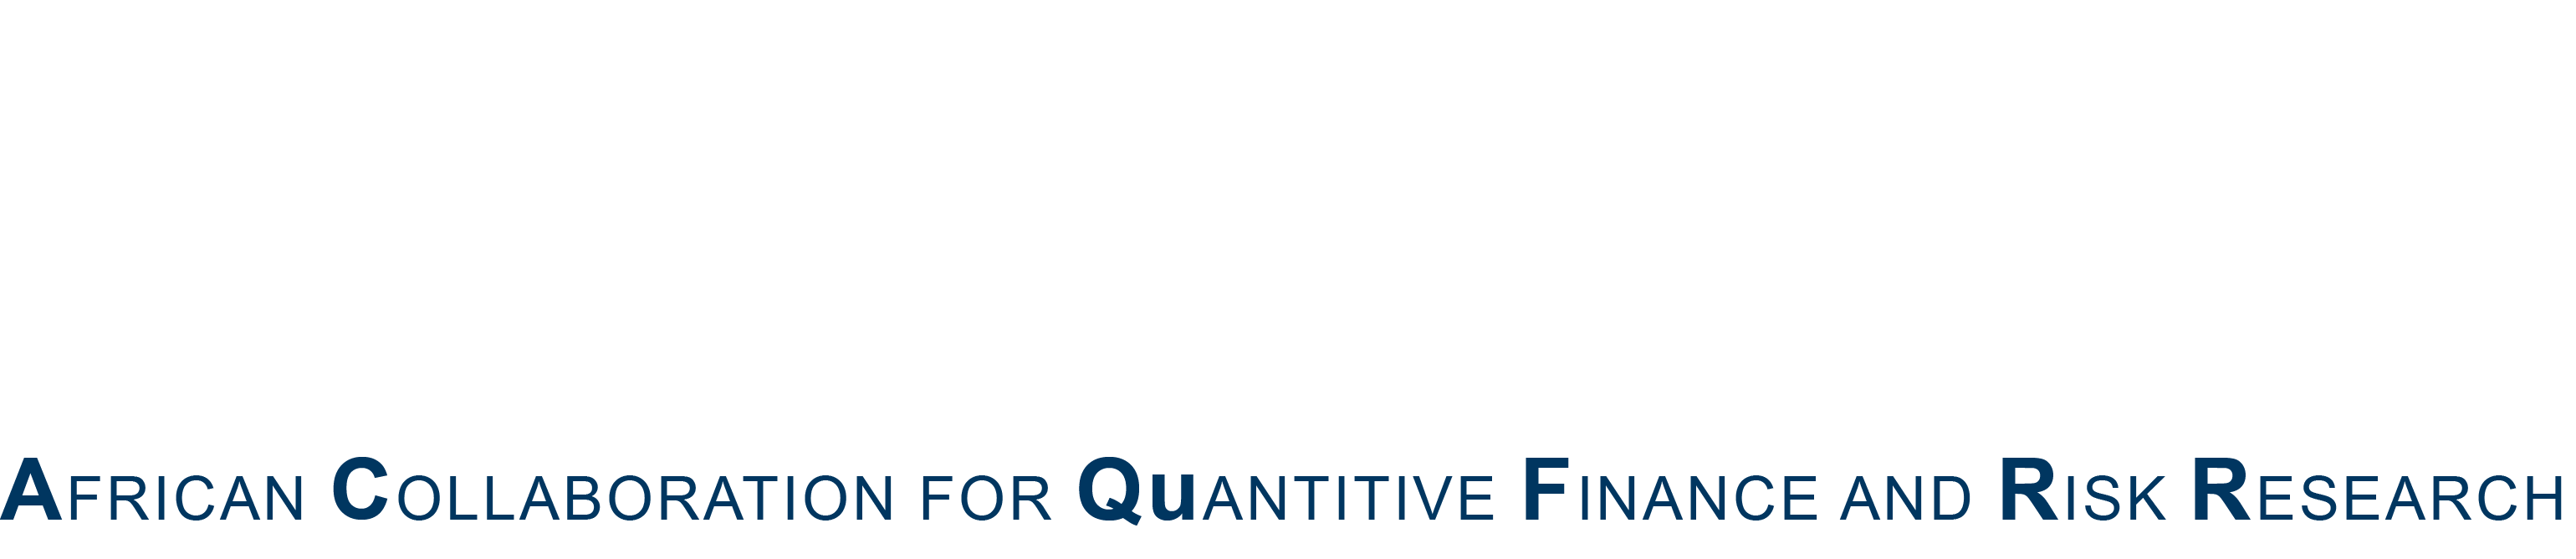 ACQuFRR - African Collaboration for Quantitative Finance and Risk Research